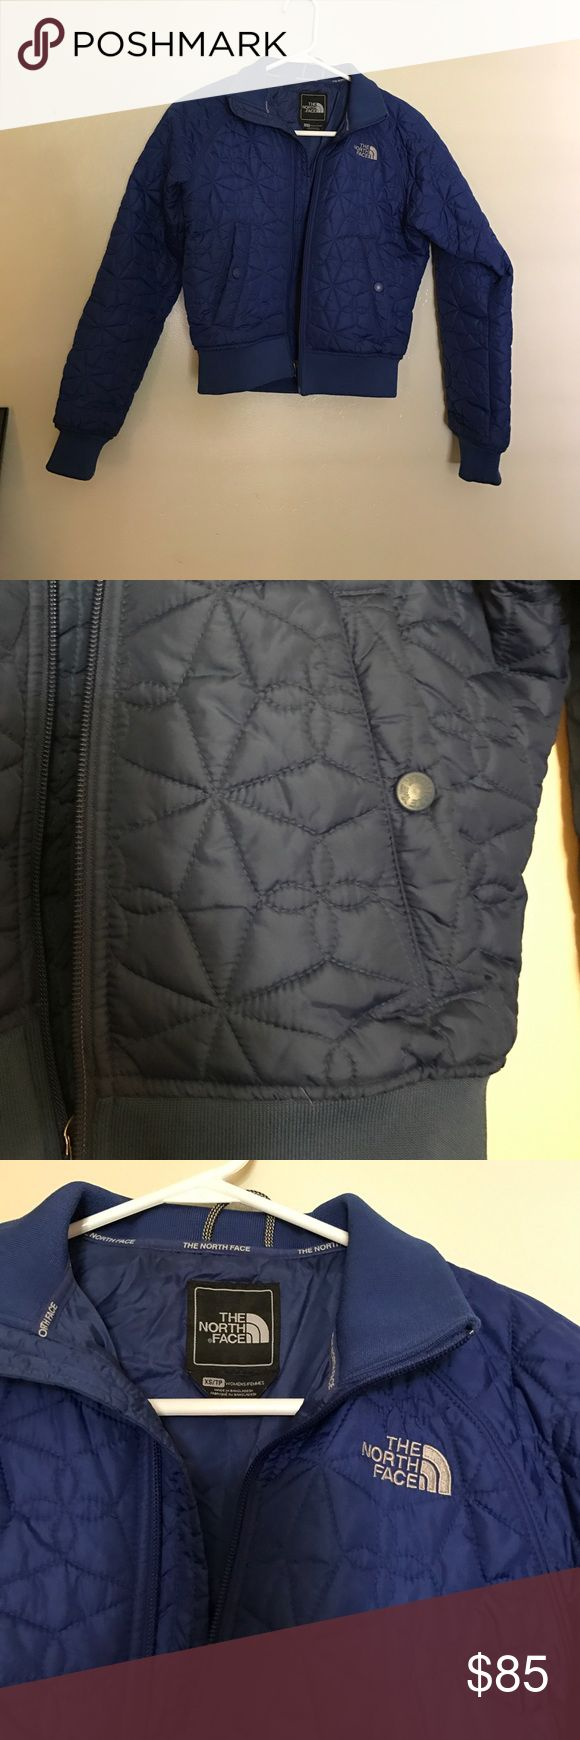 Royal blue north face jacket Royal Blue north face jacket. Size XS. Shell 100% nylon lining 100% nylon insulation 100% polyester. Worn once. The North Face Jackets & Coats